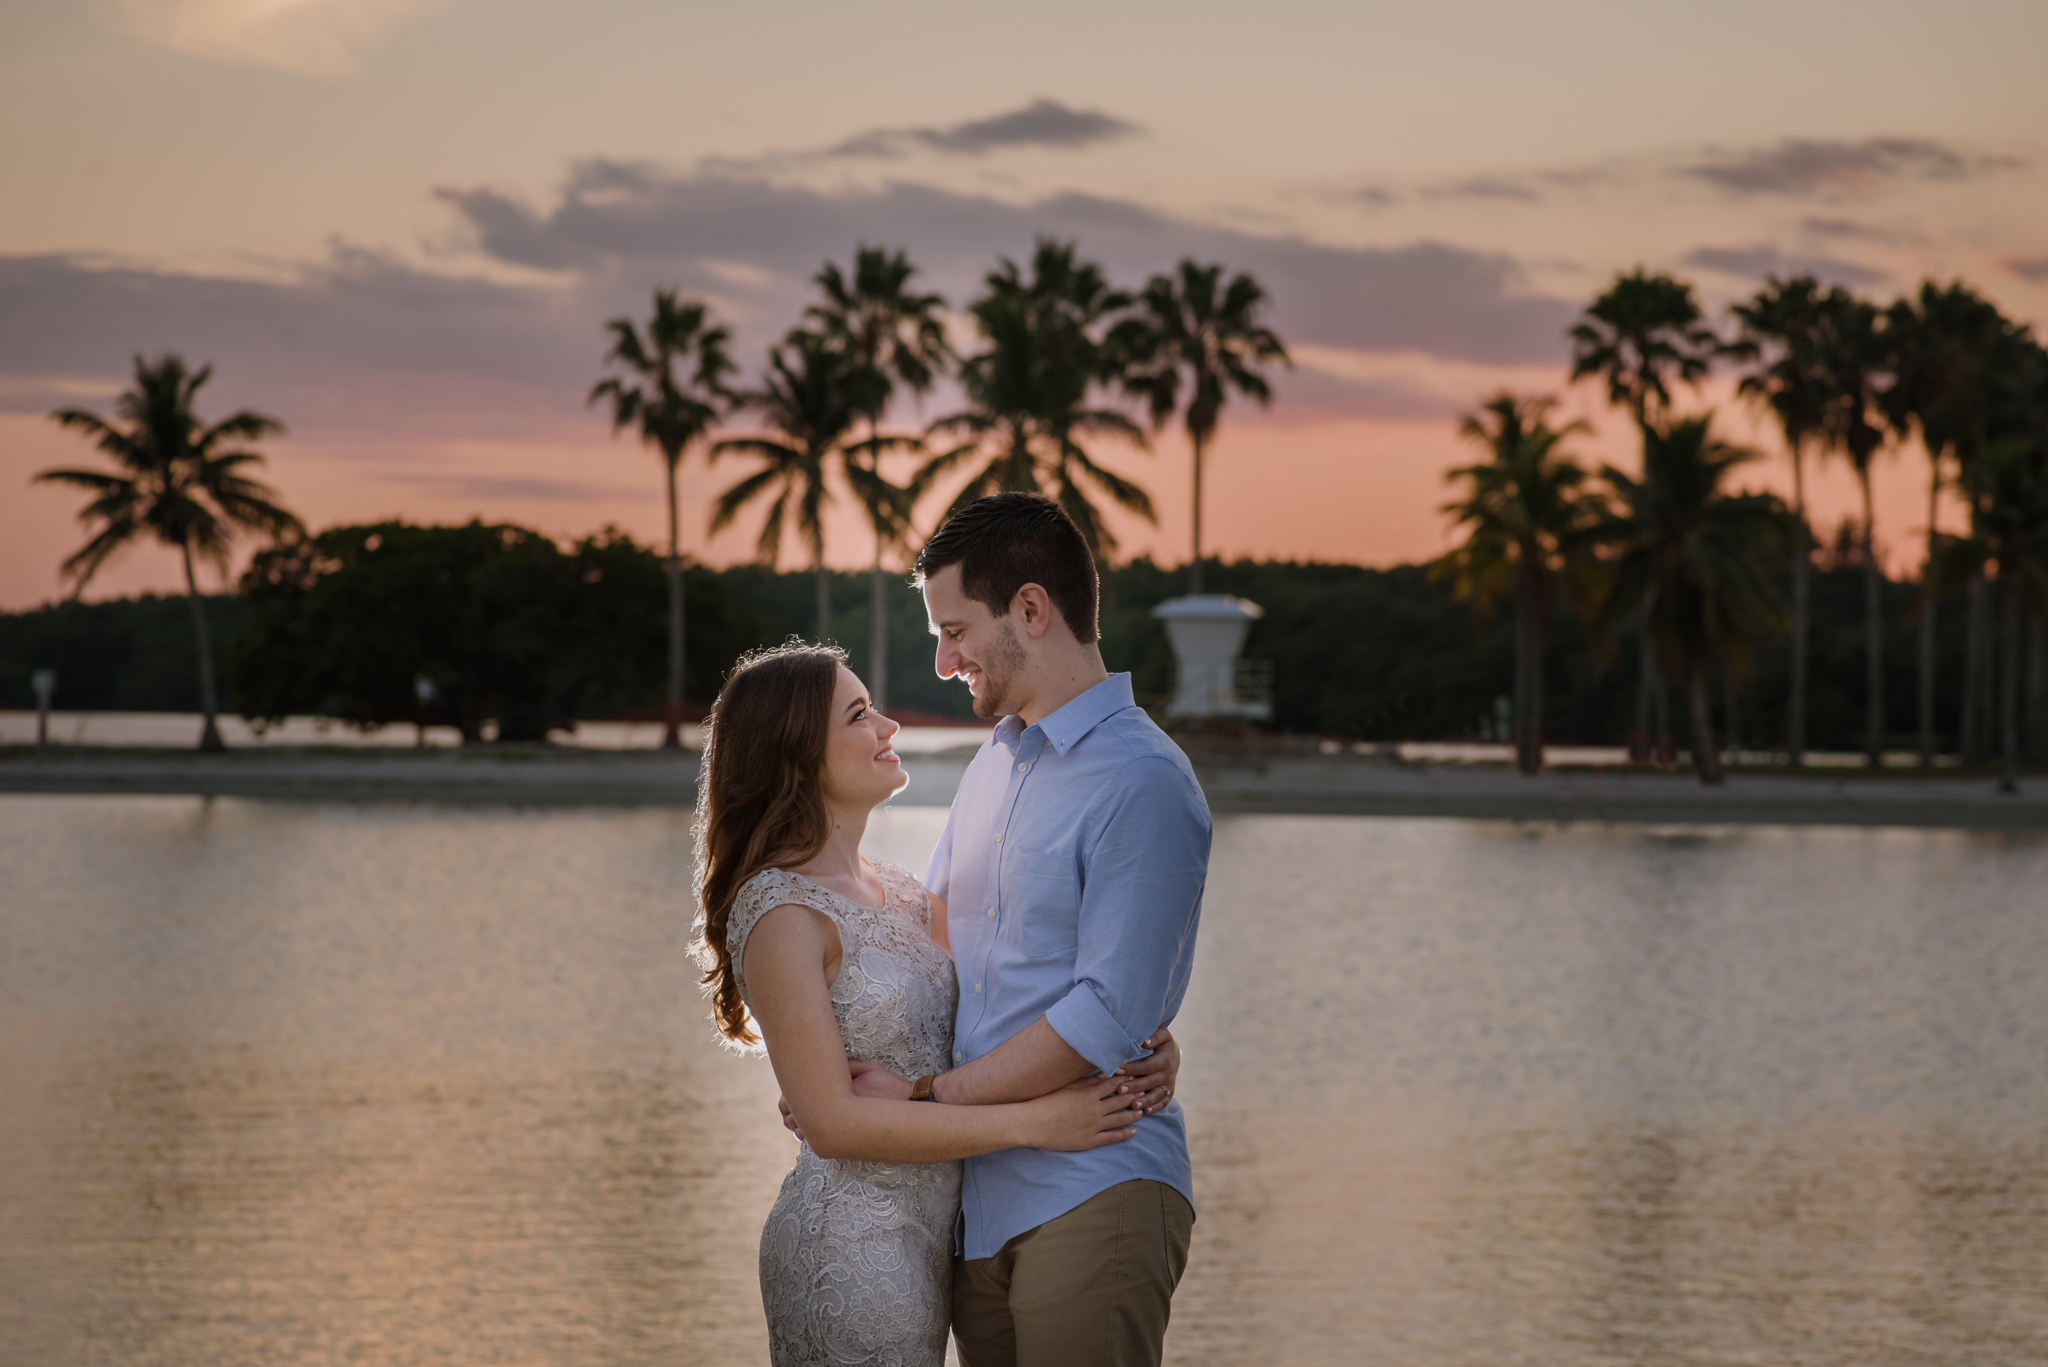 miami-sunset-engagement-vanessa-and-johnny-photography-video-1-50.jpg